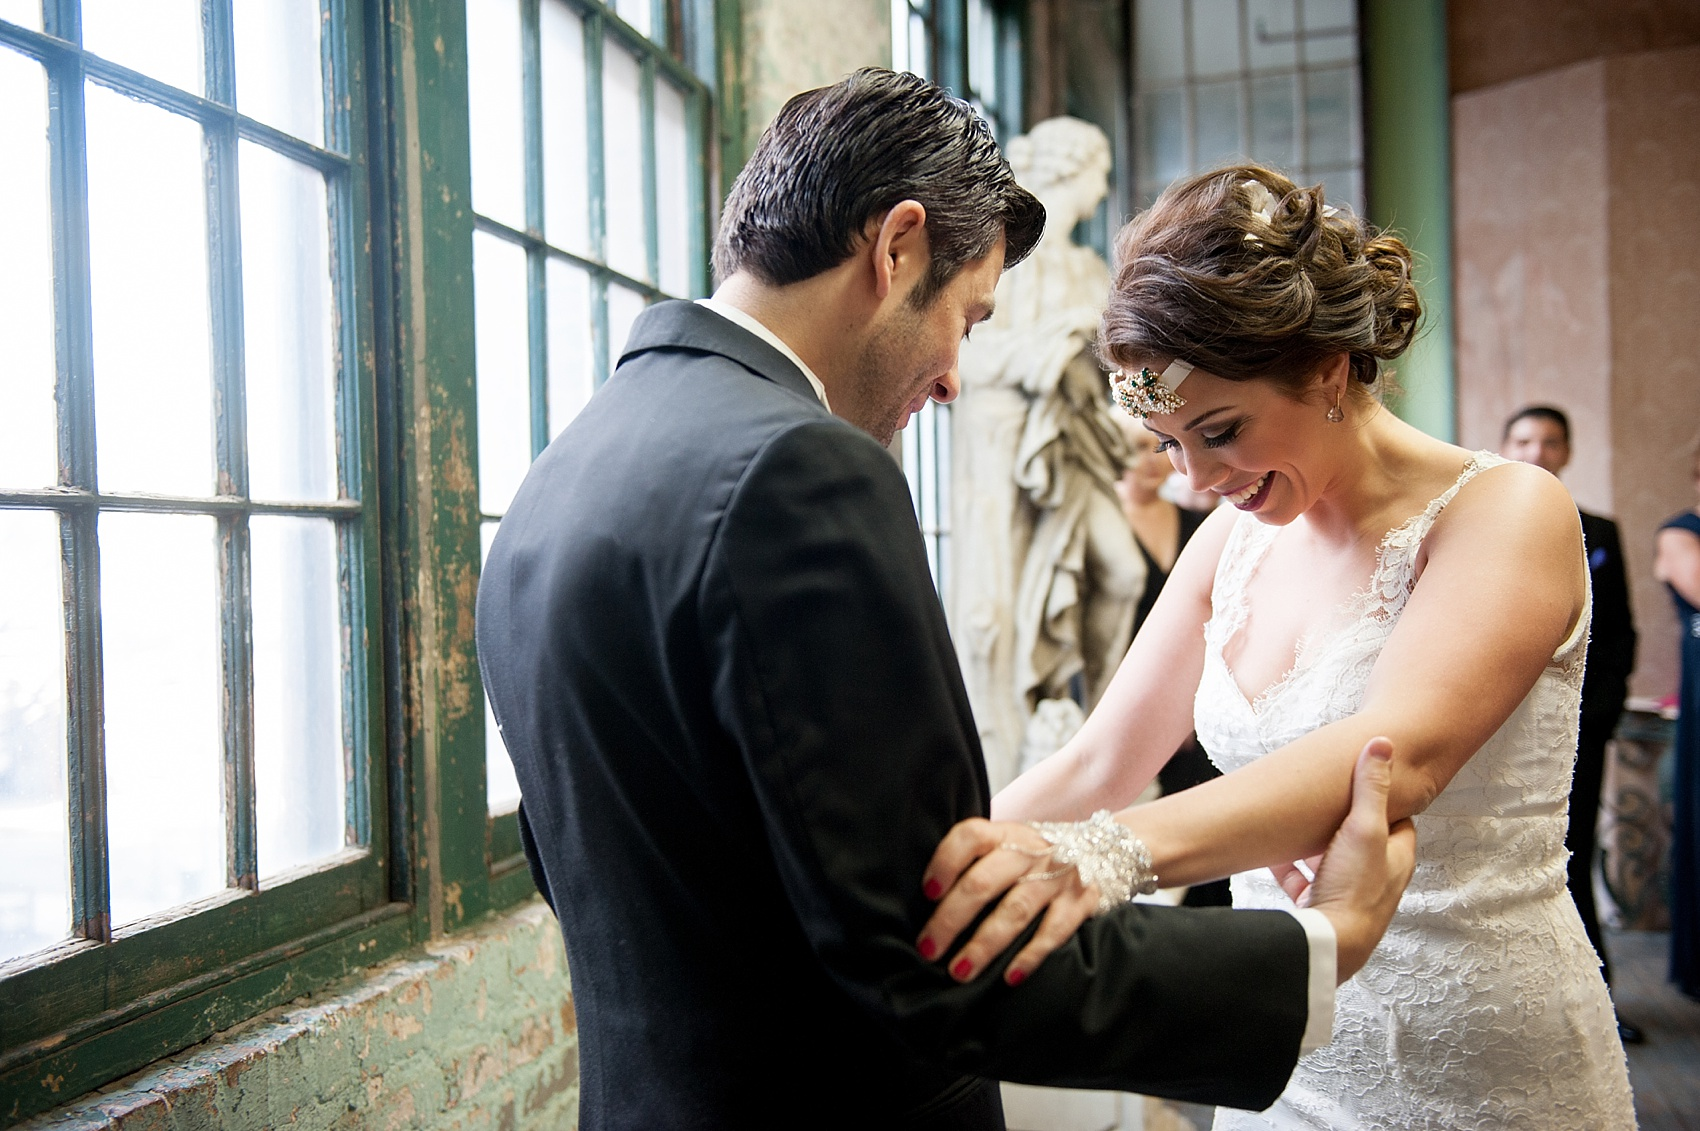 Metropolitan Building vintage 1920's wedding first look. Images by Mikkel Paige Photography.